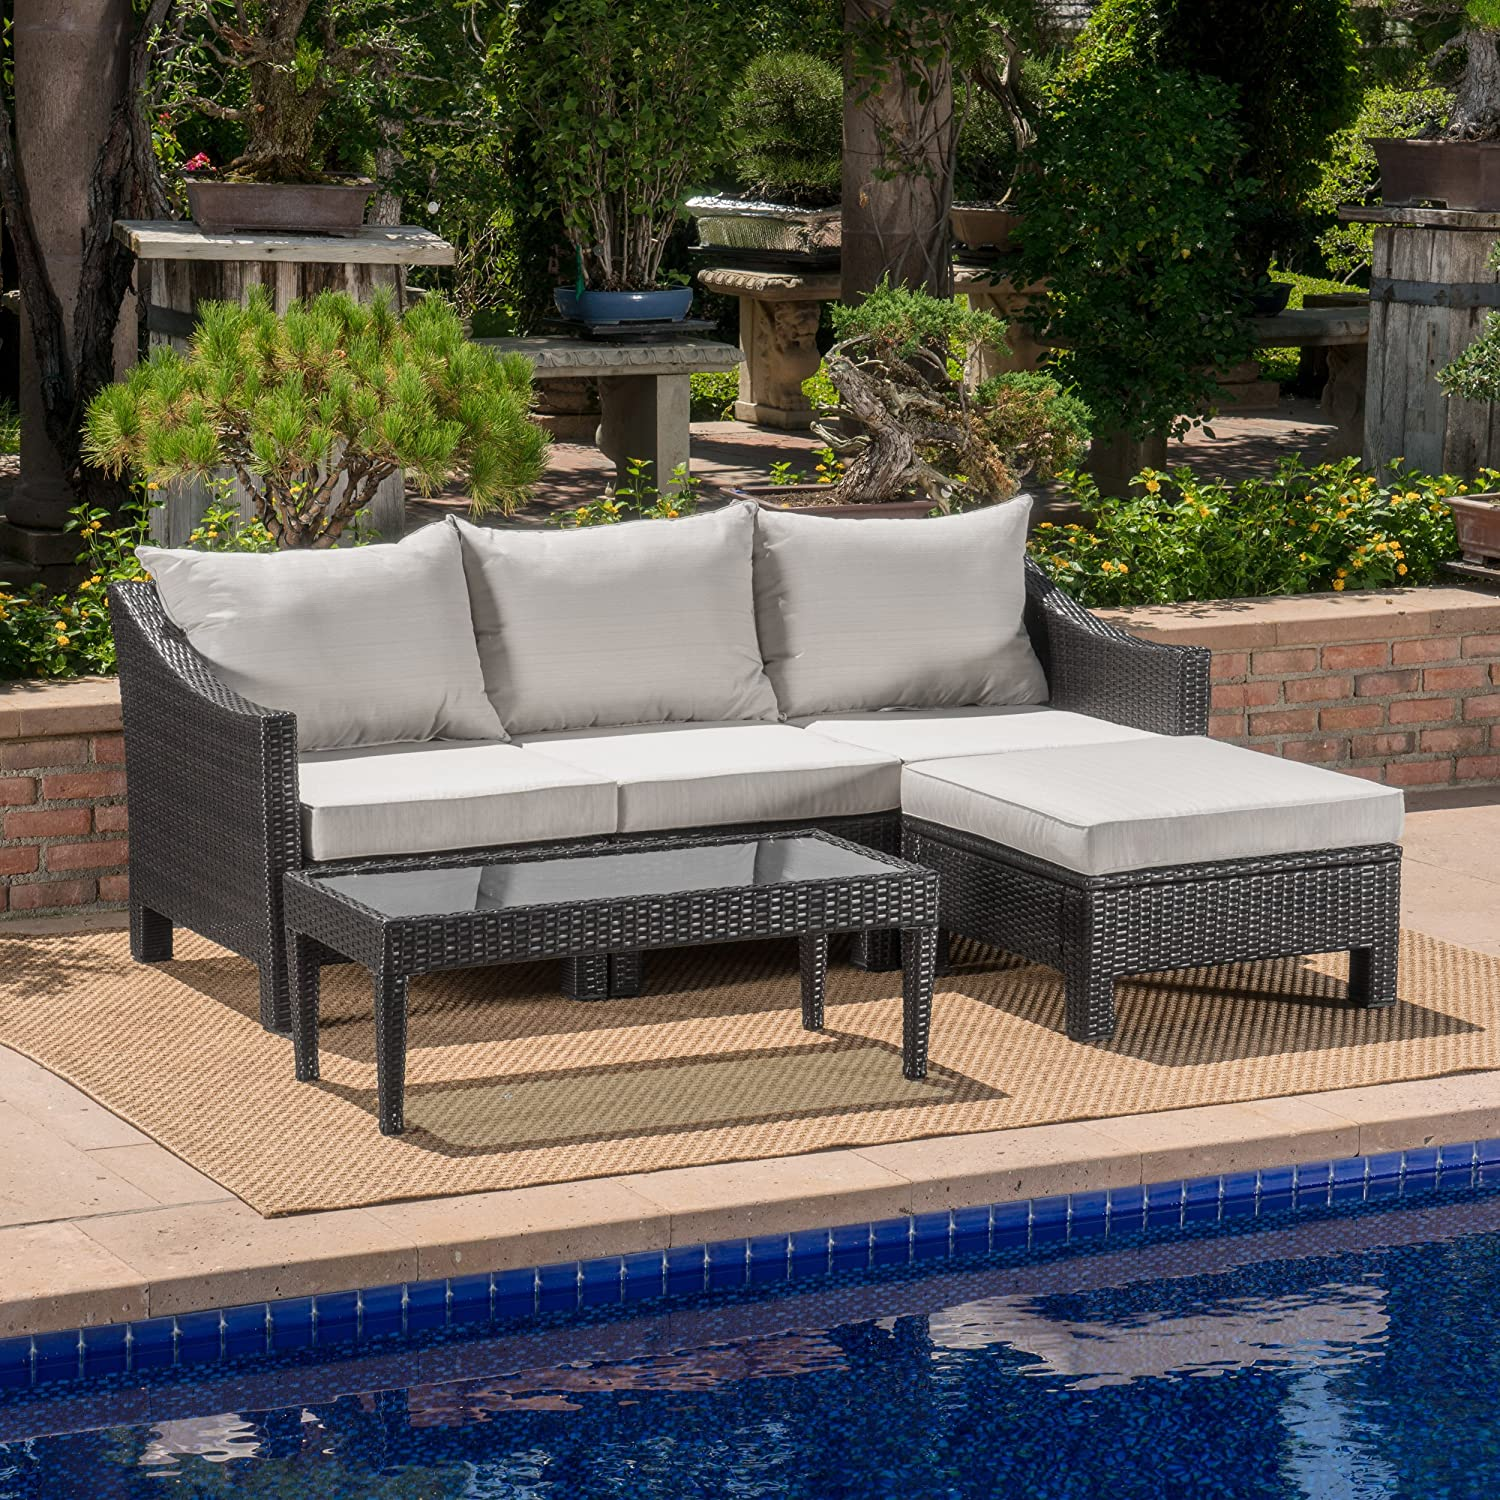 Amazon.com: Great Deal Furniture Caspian Outdoor L Shaped Grey Wicker  Sectional Sofa Set with Silver Water Resistant Cushions: Garden & Outdoor - Amazon.com: Great Deal Furniture Caspian Outdoor L Shaped Grey